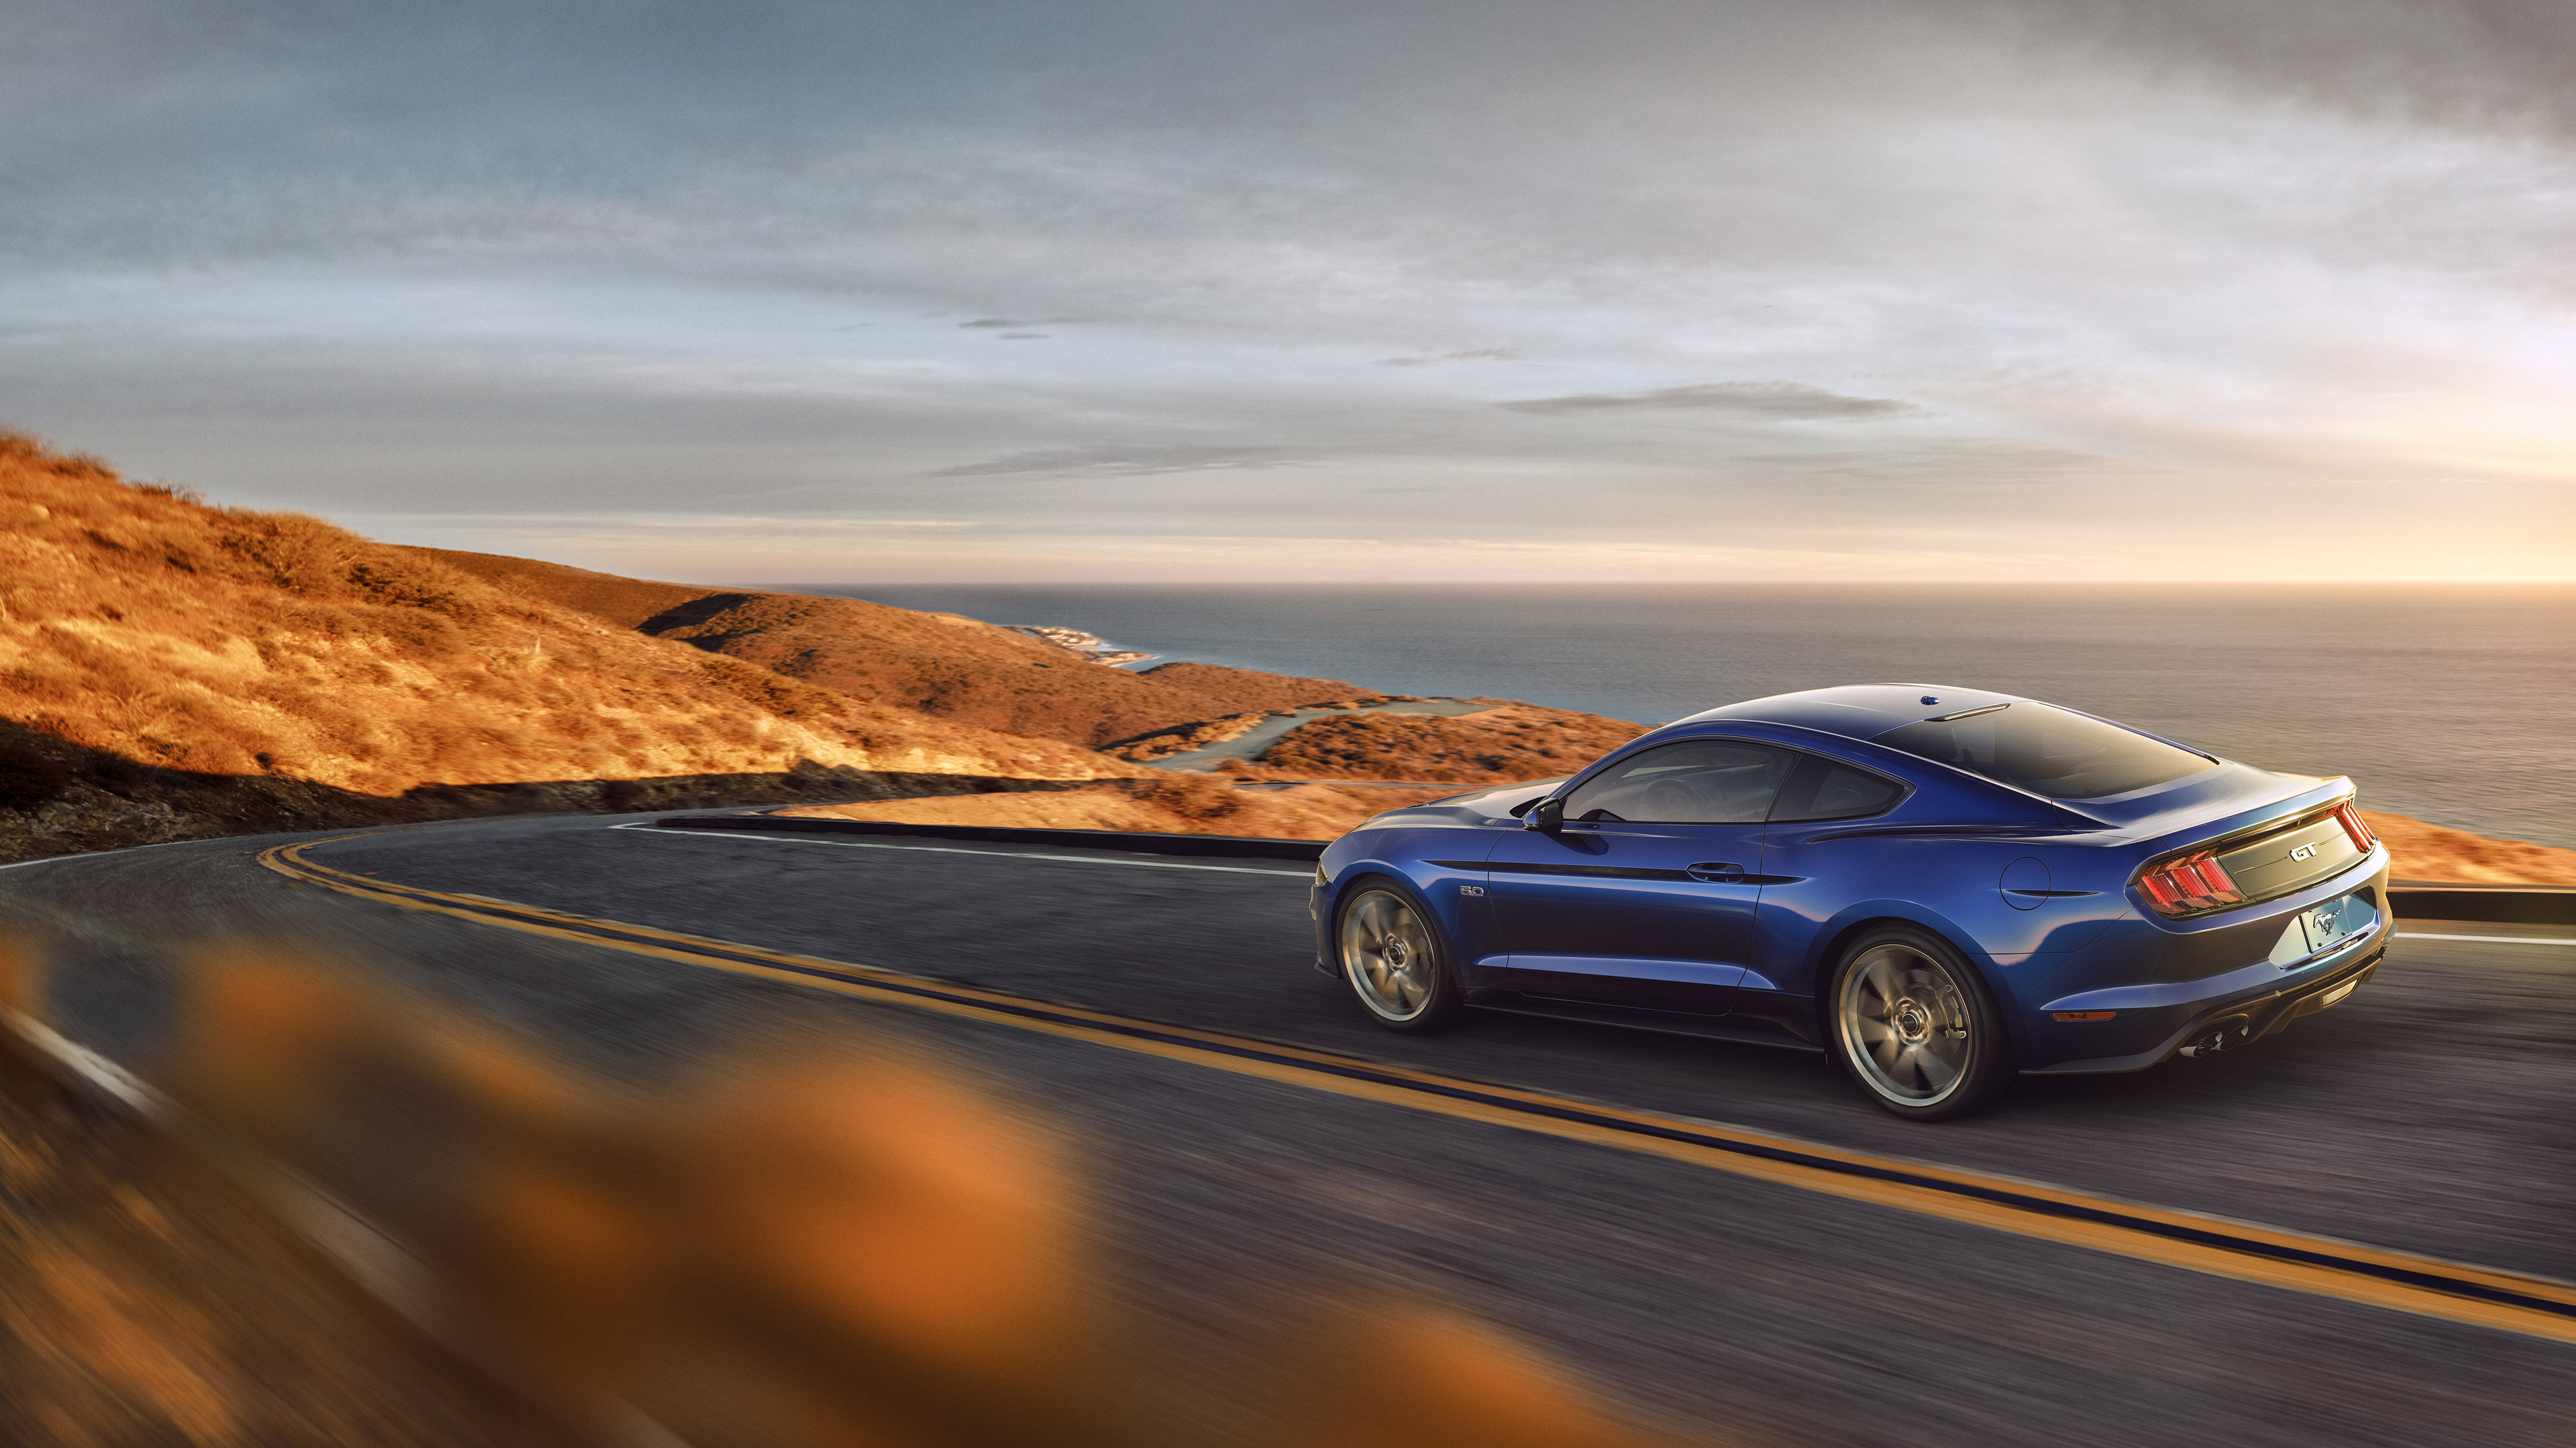 2018 Mustang Wallpaper >> 2018 Ford Mustang V8 Gt Hd Cars 4k Wallpapers Images